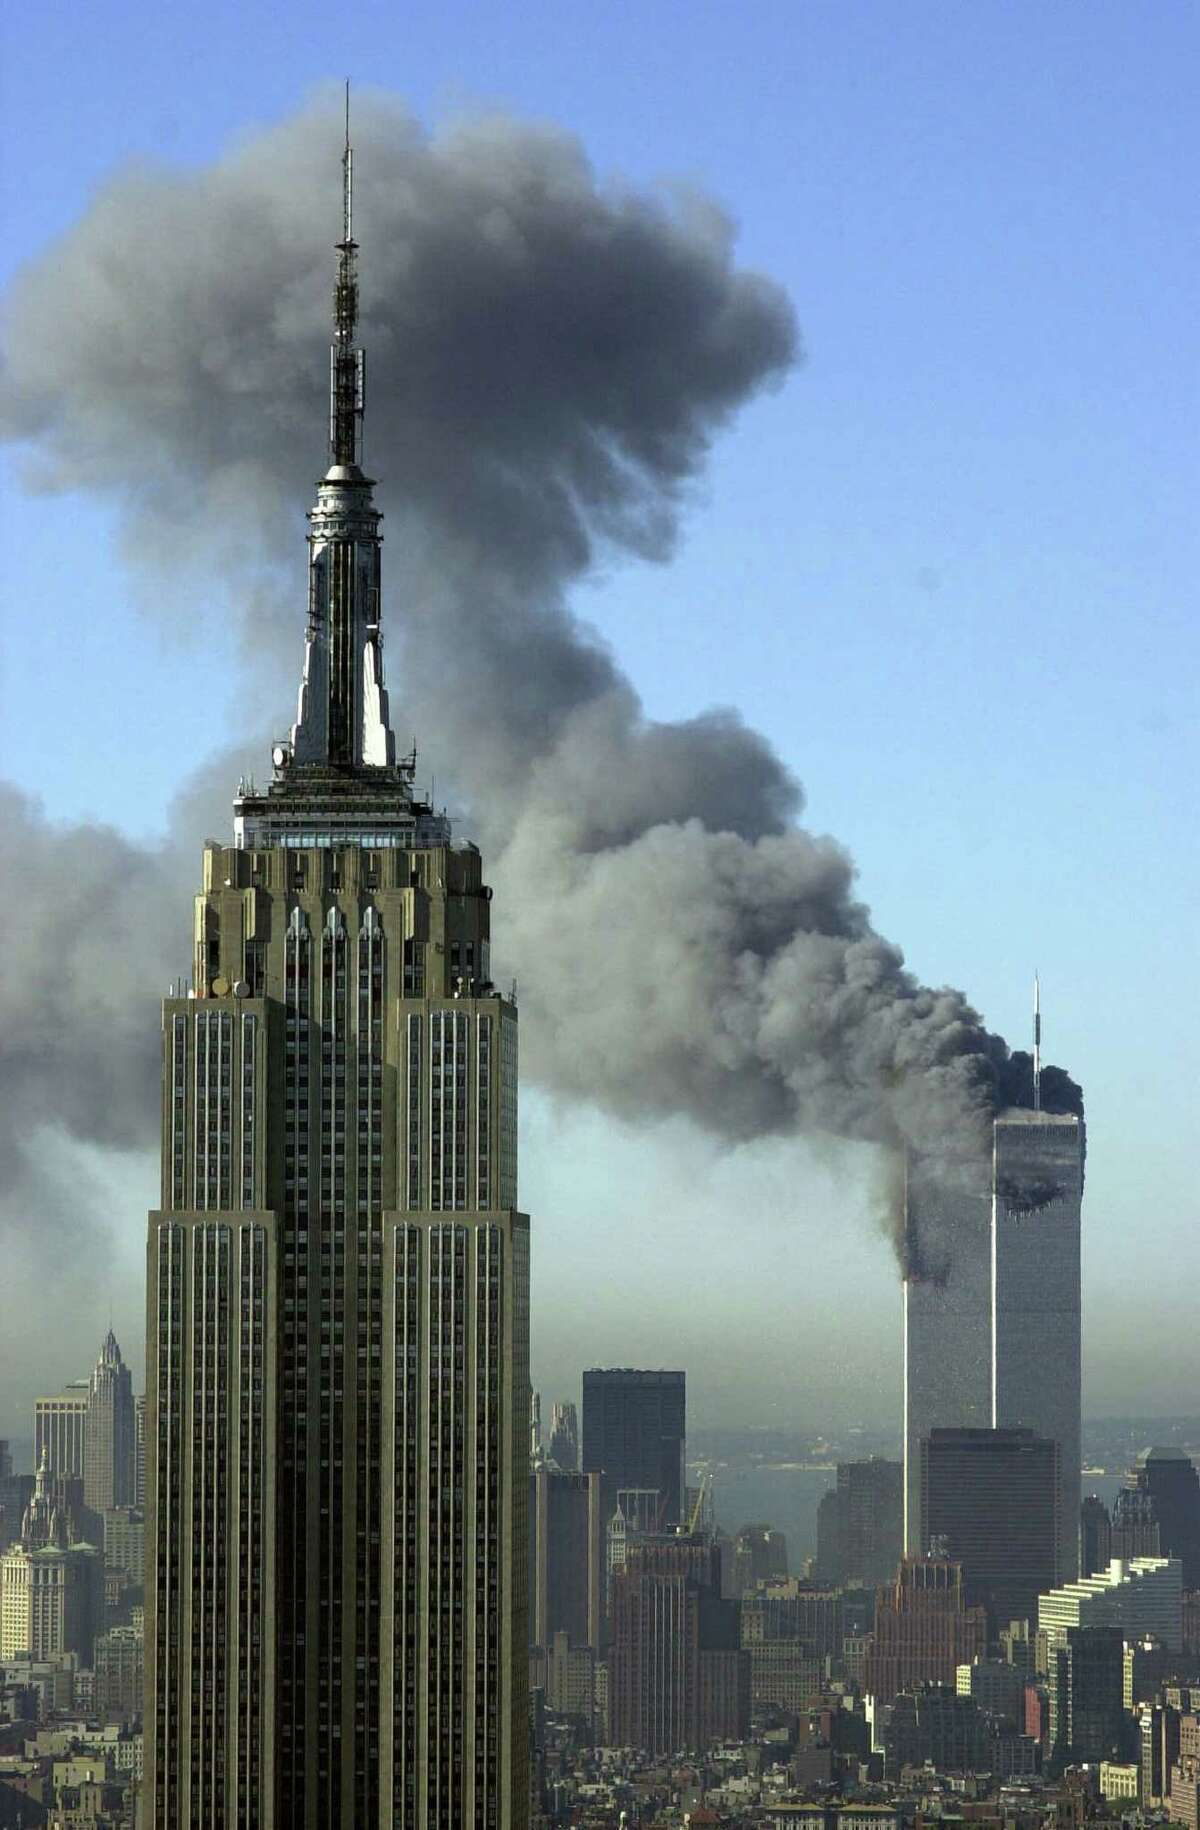 FILE - In this Tuesday, Sept. 11, 2001 file photo, plumes of smoke rise from the World Trade Center buildings in New York. The Empire State building is seen in the foreground. For years, a handful of current and former American officials have been urging President Barrack Obama to release secret files that they believe document links between the government of Saudi Arabia and the terrorist attacks of September 11, 2001. Other officials, including the executive director of the 9-11 commission, have said the classified documents donít prove that the Saudi government knew about or financed the attacks_and that making them public would fuel bogus conspiracy theories. (AP Photo/Patrick Sison, File)